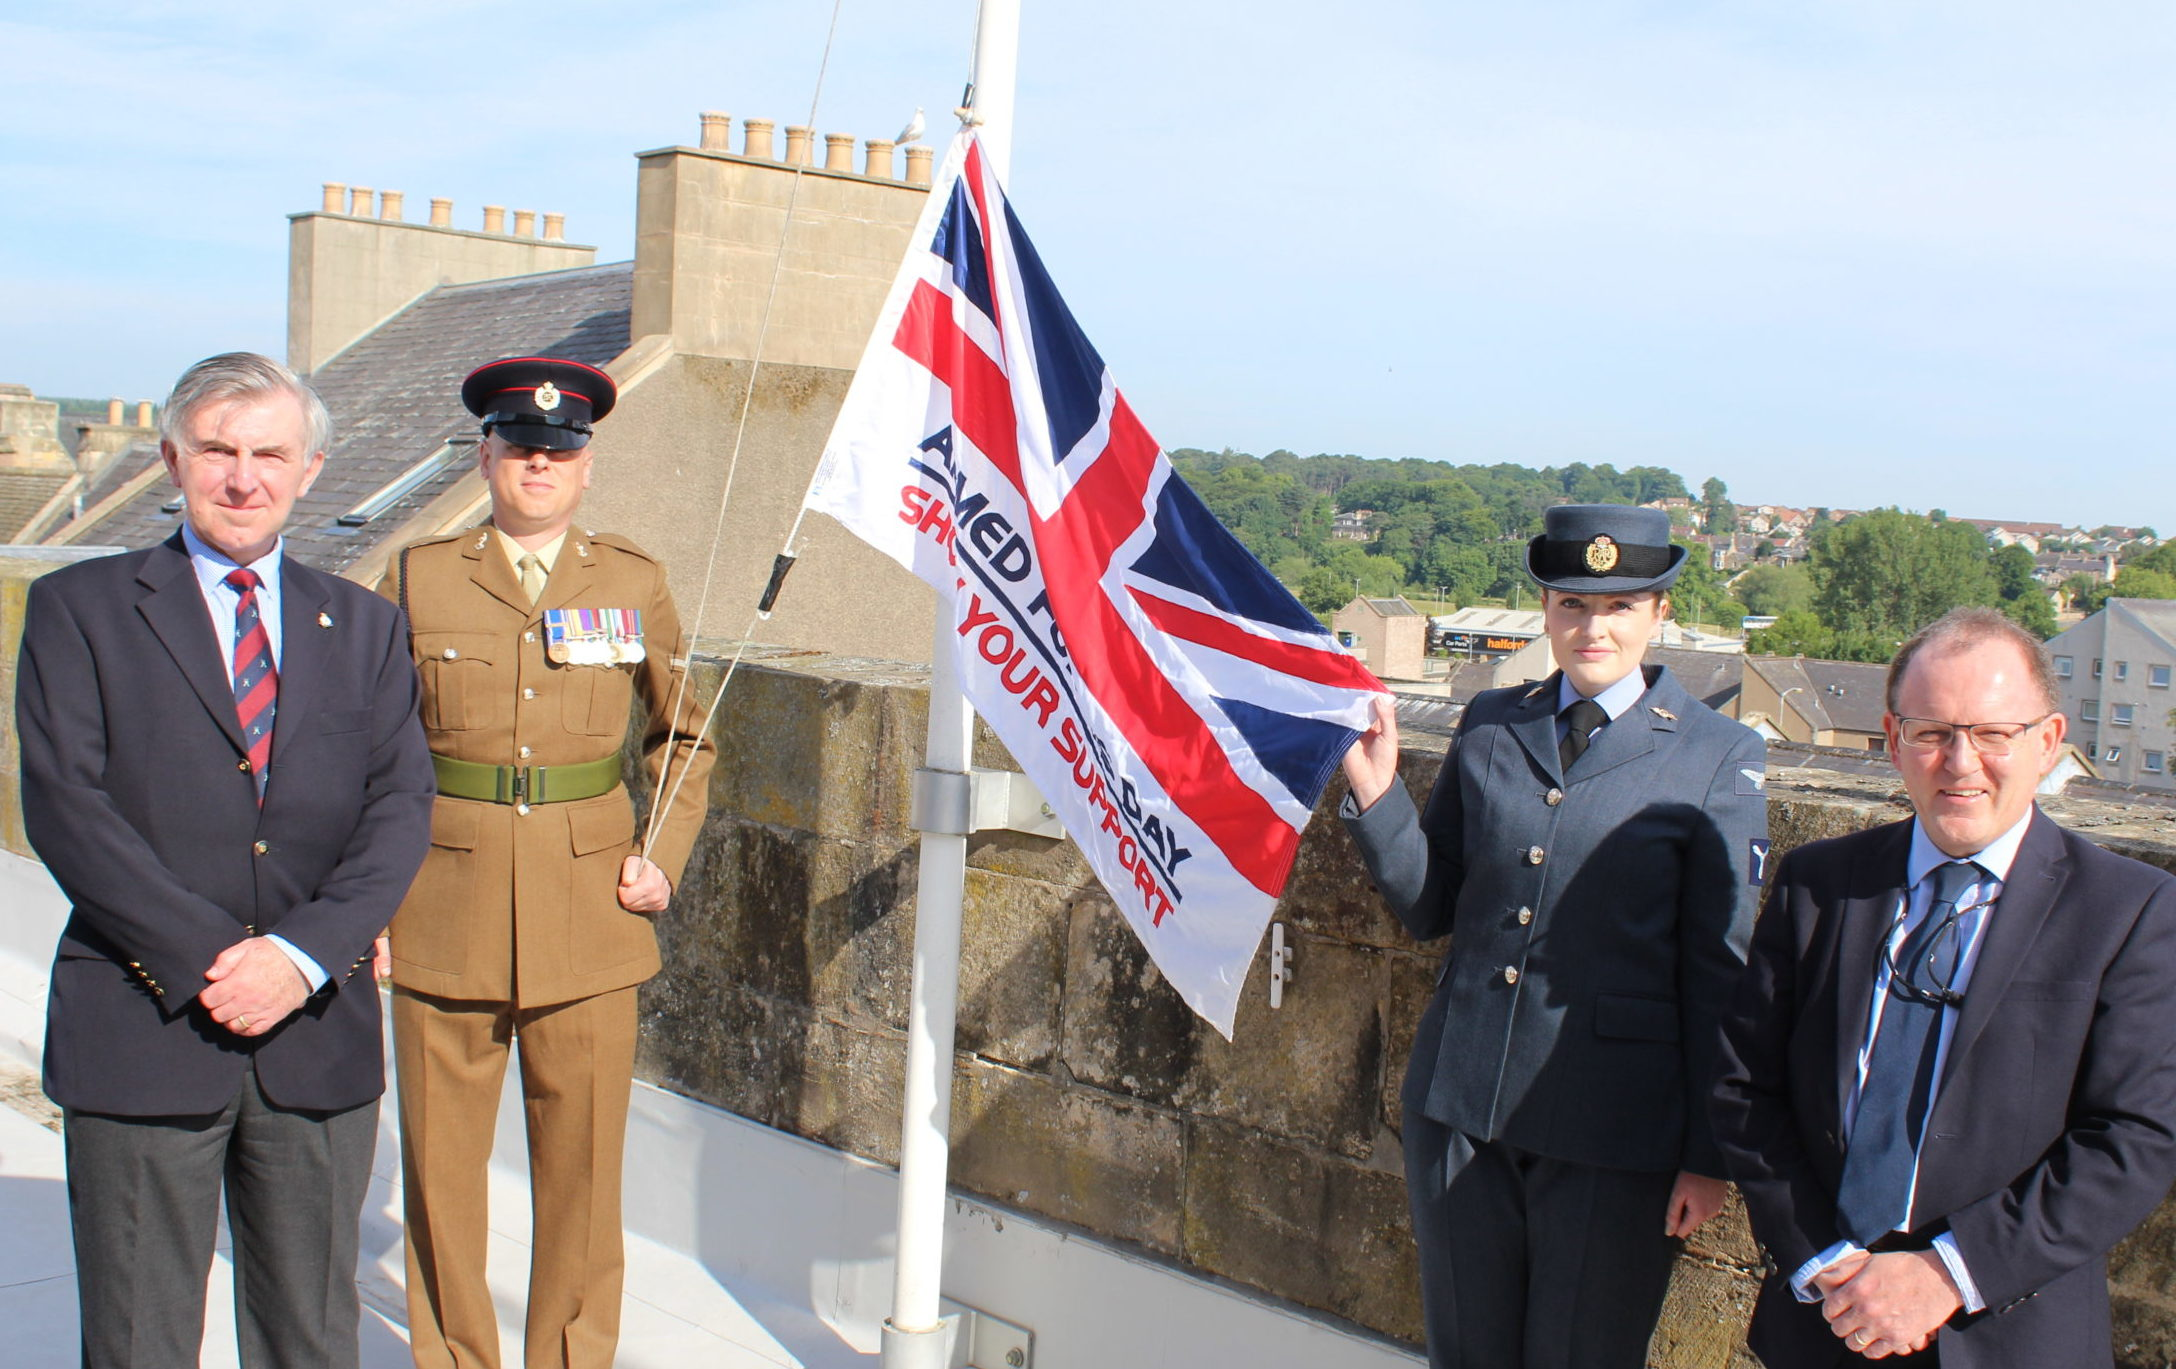 The Armed Forces Day flag is hoisted above Moray Council's headquarters.